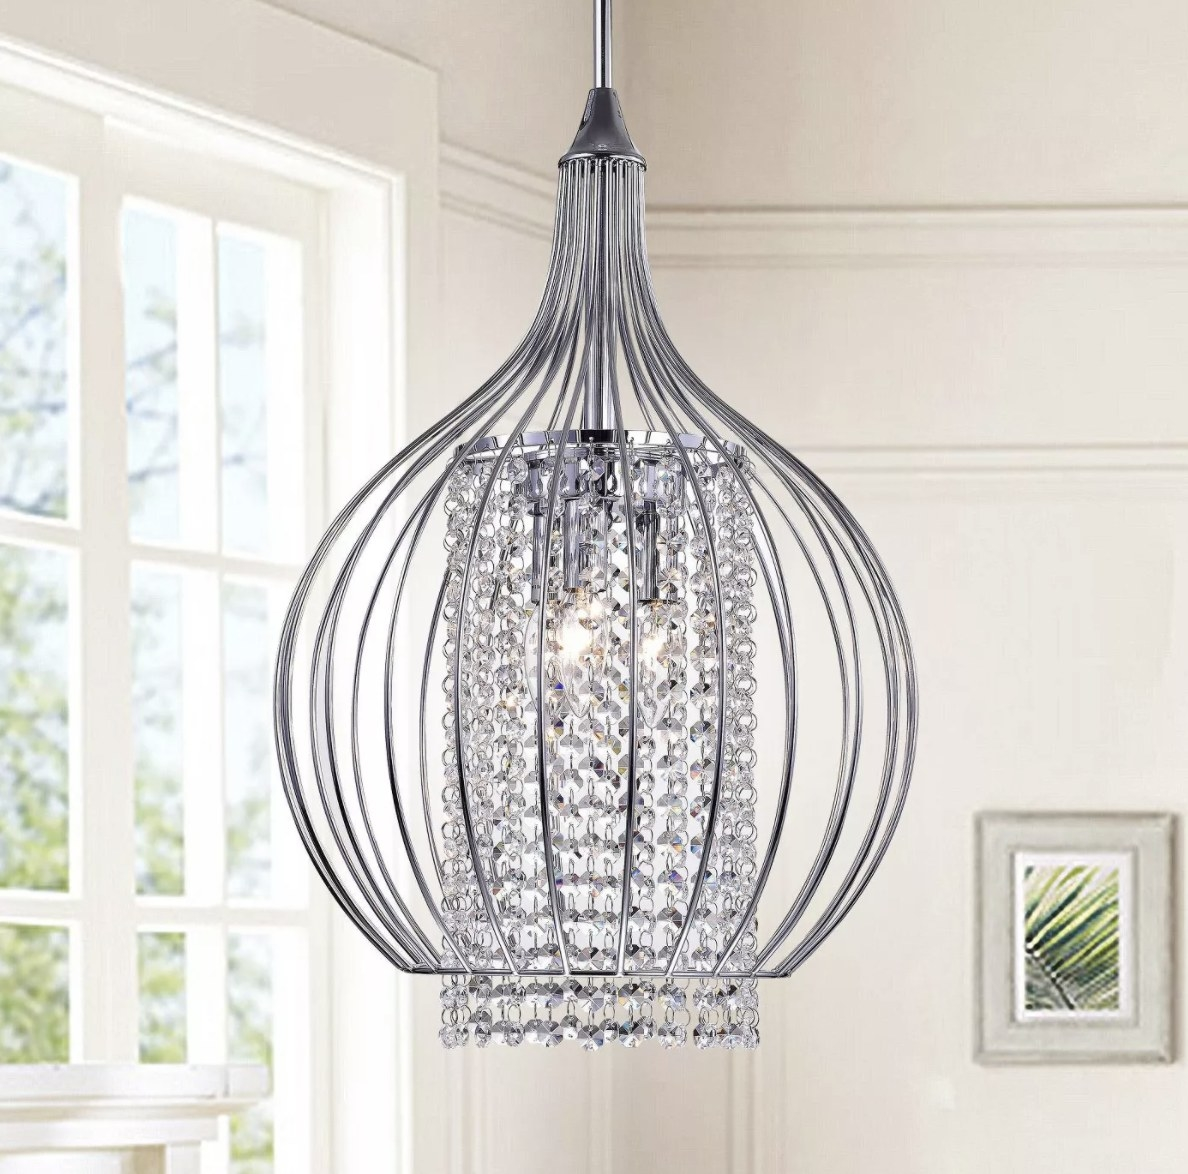 The teardrop-shaped silver frame and clear crystals in an inner cylinder frame sparkle in a well lit room